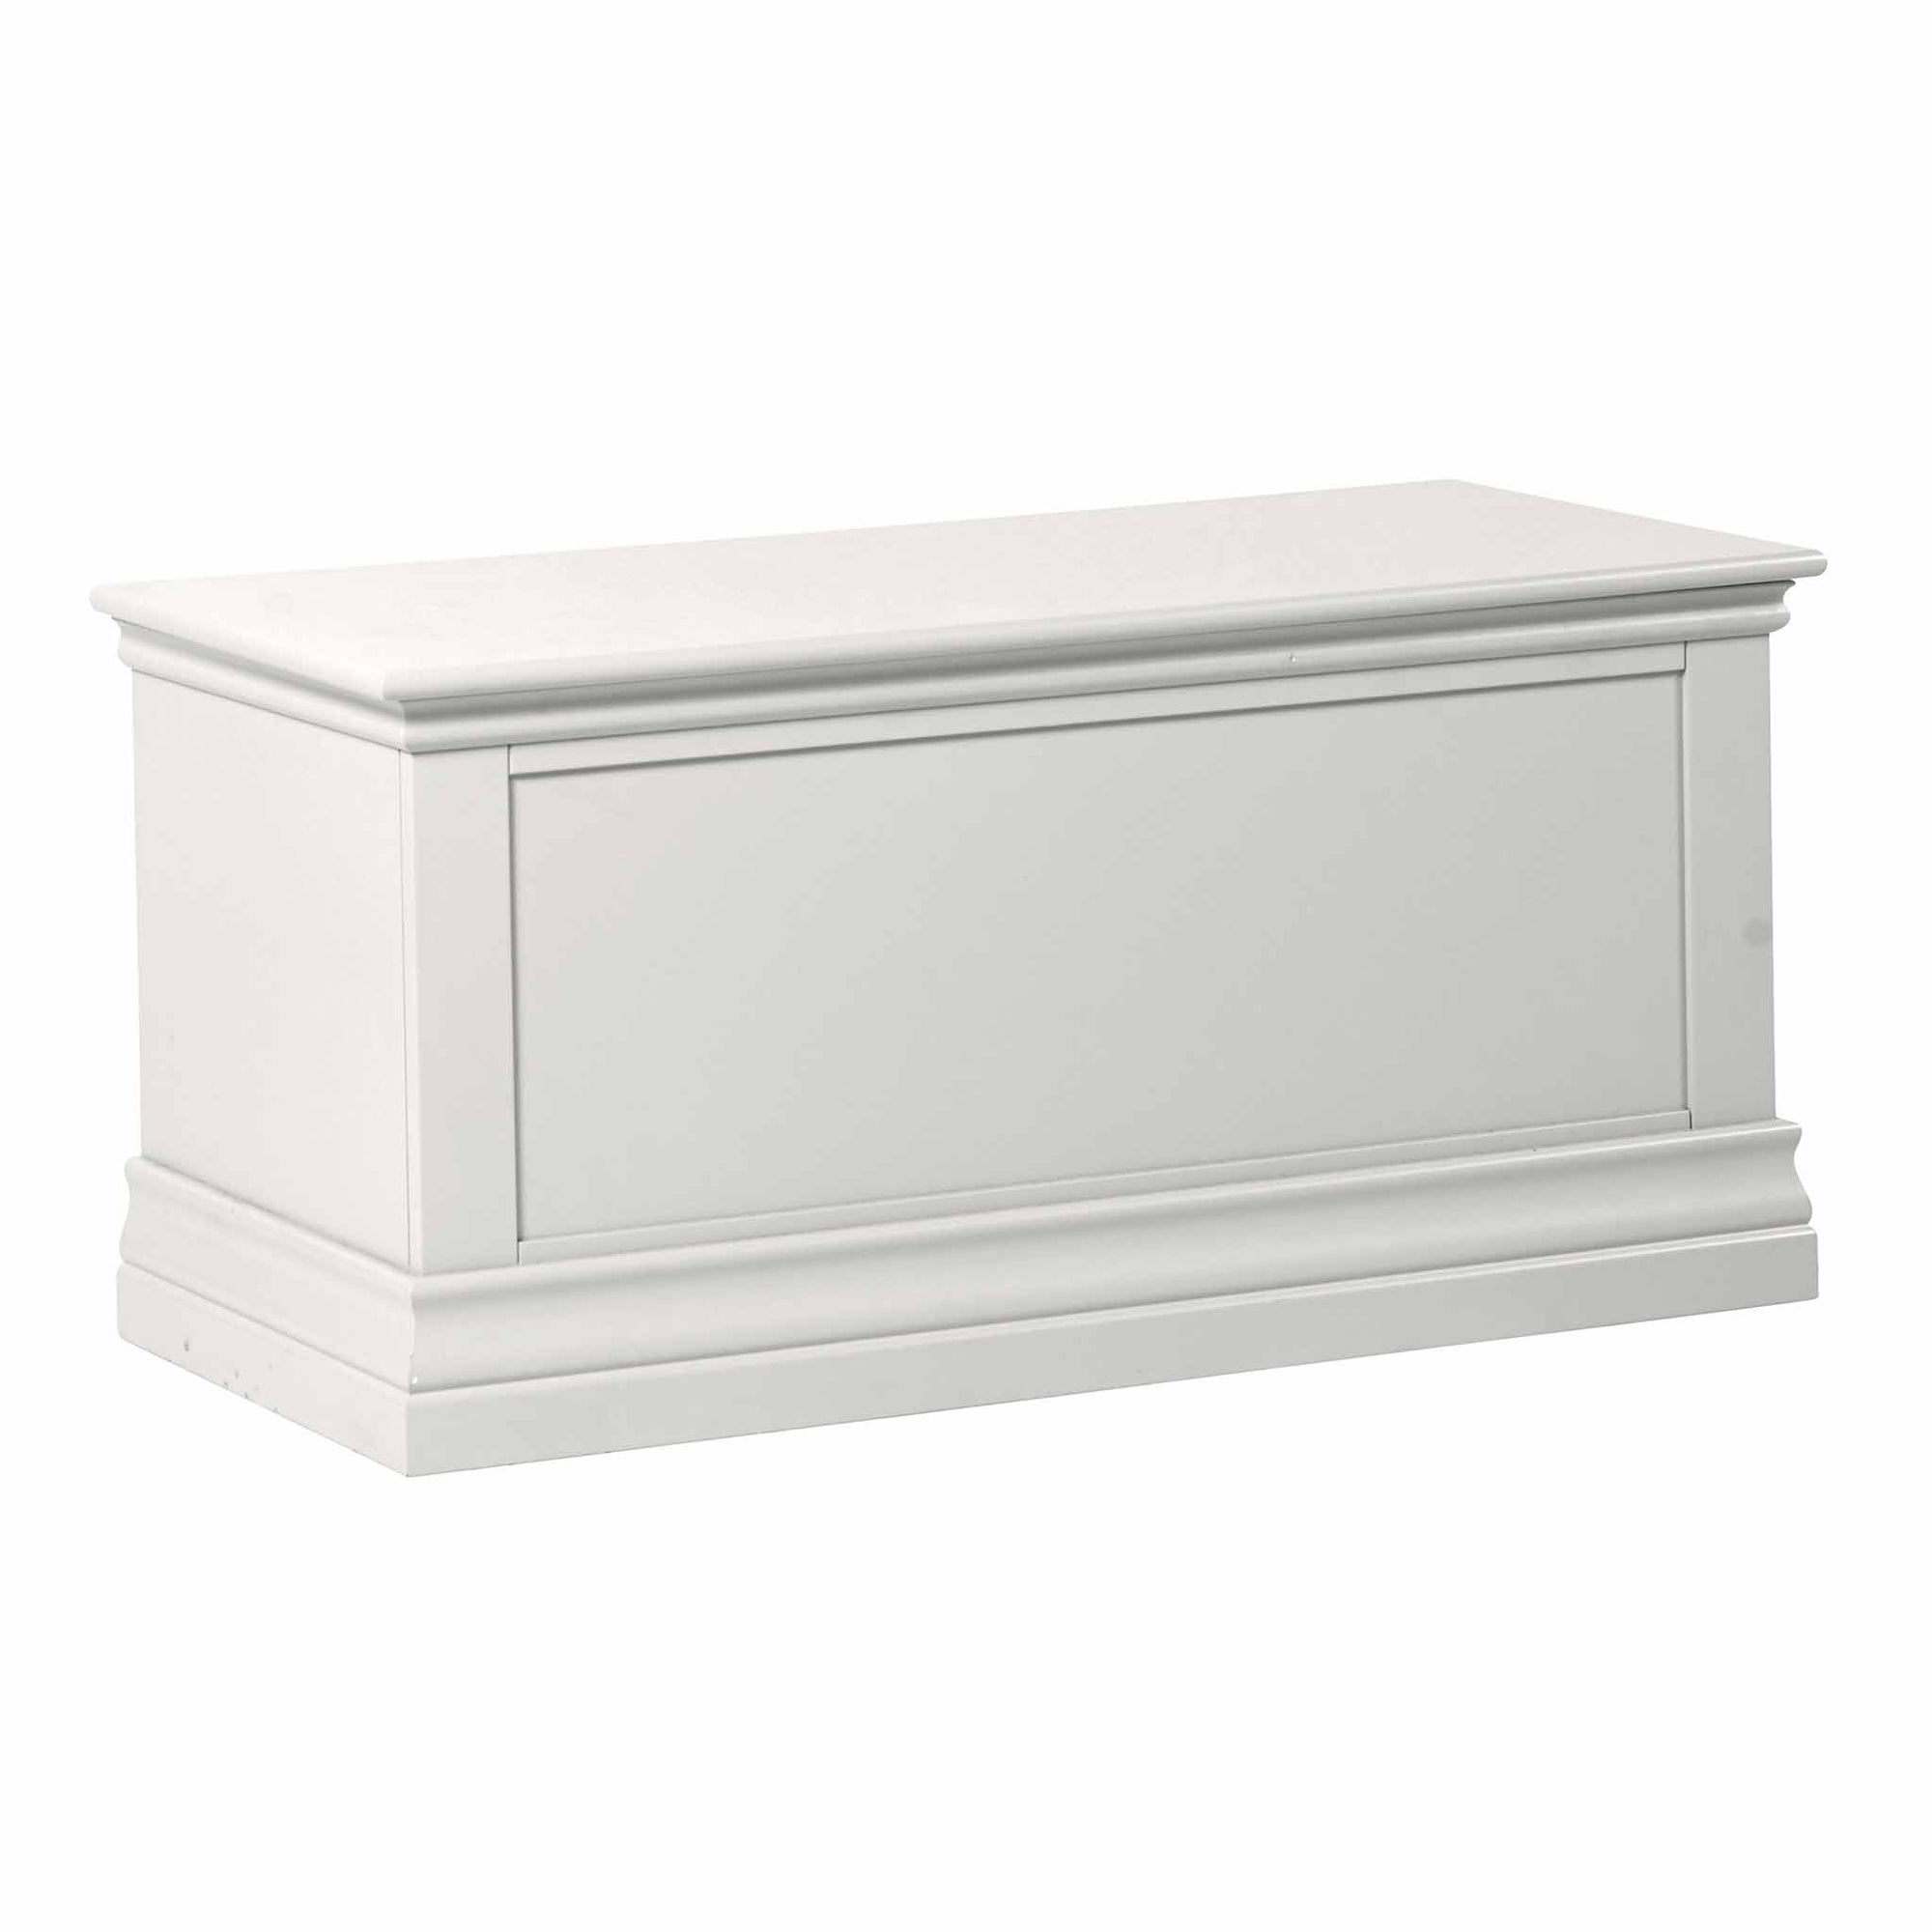 Melrose White Blanket Storage Box from Roseland Furniture